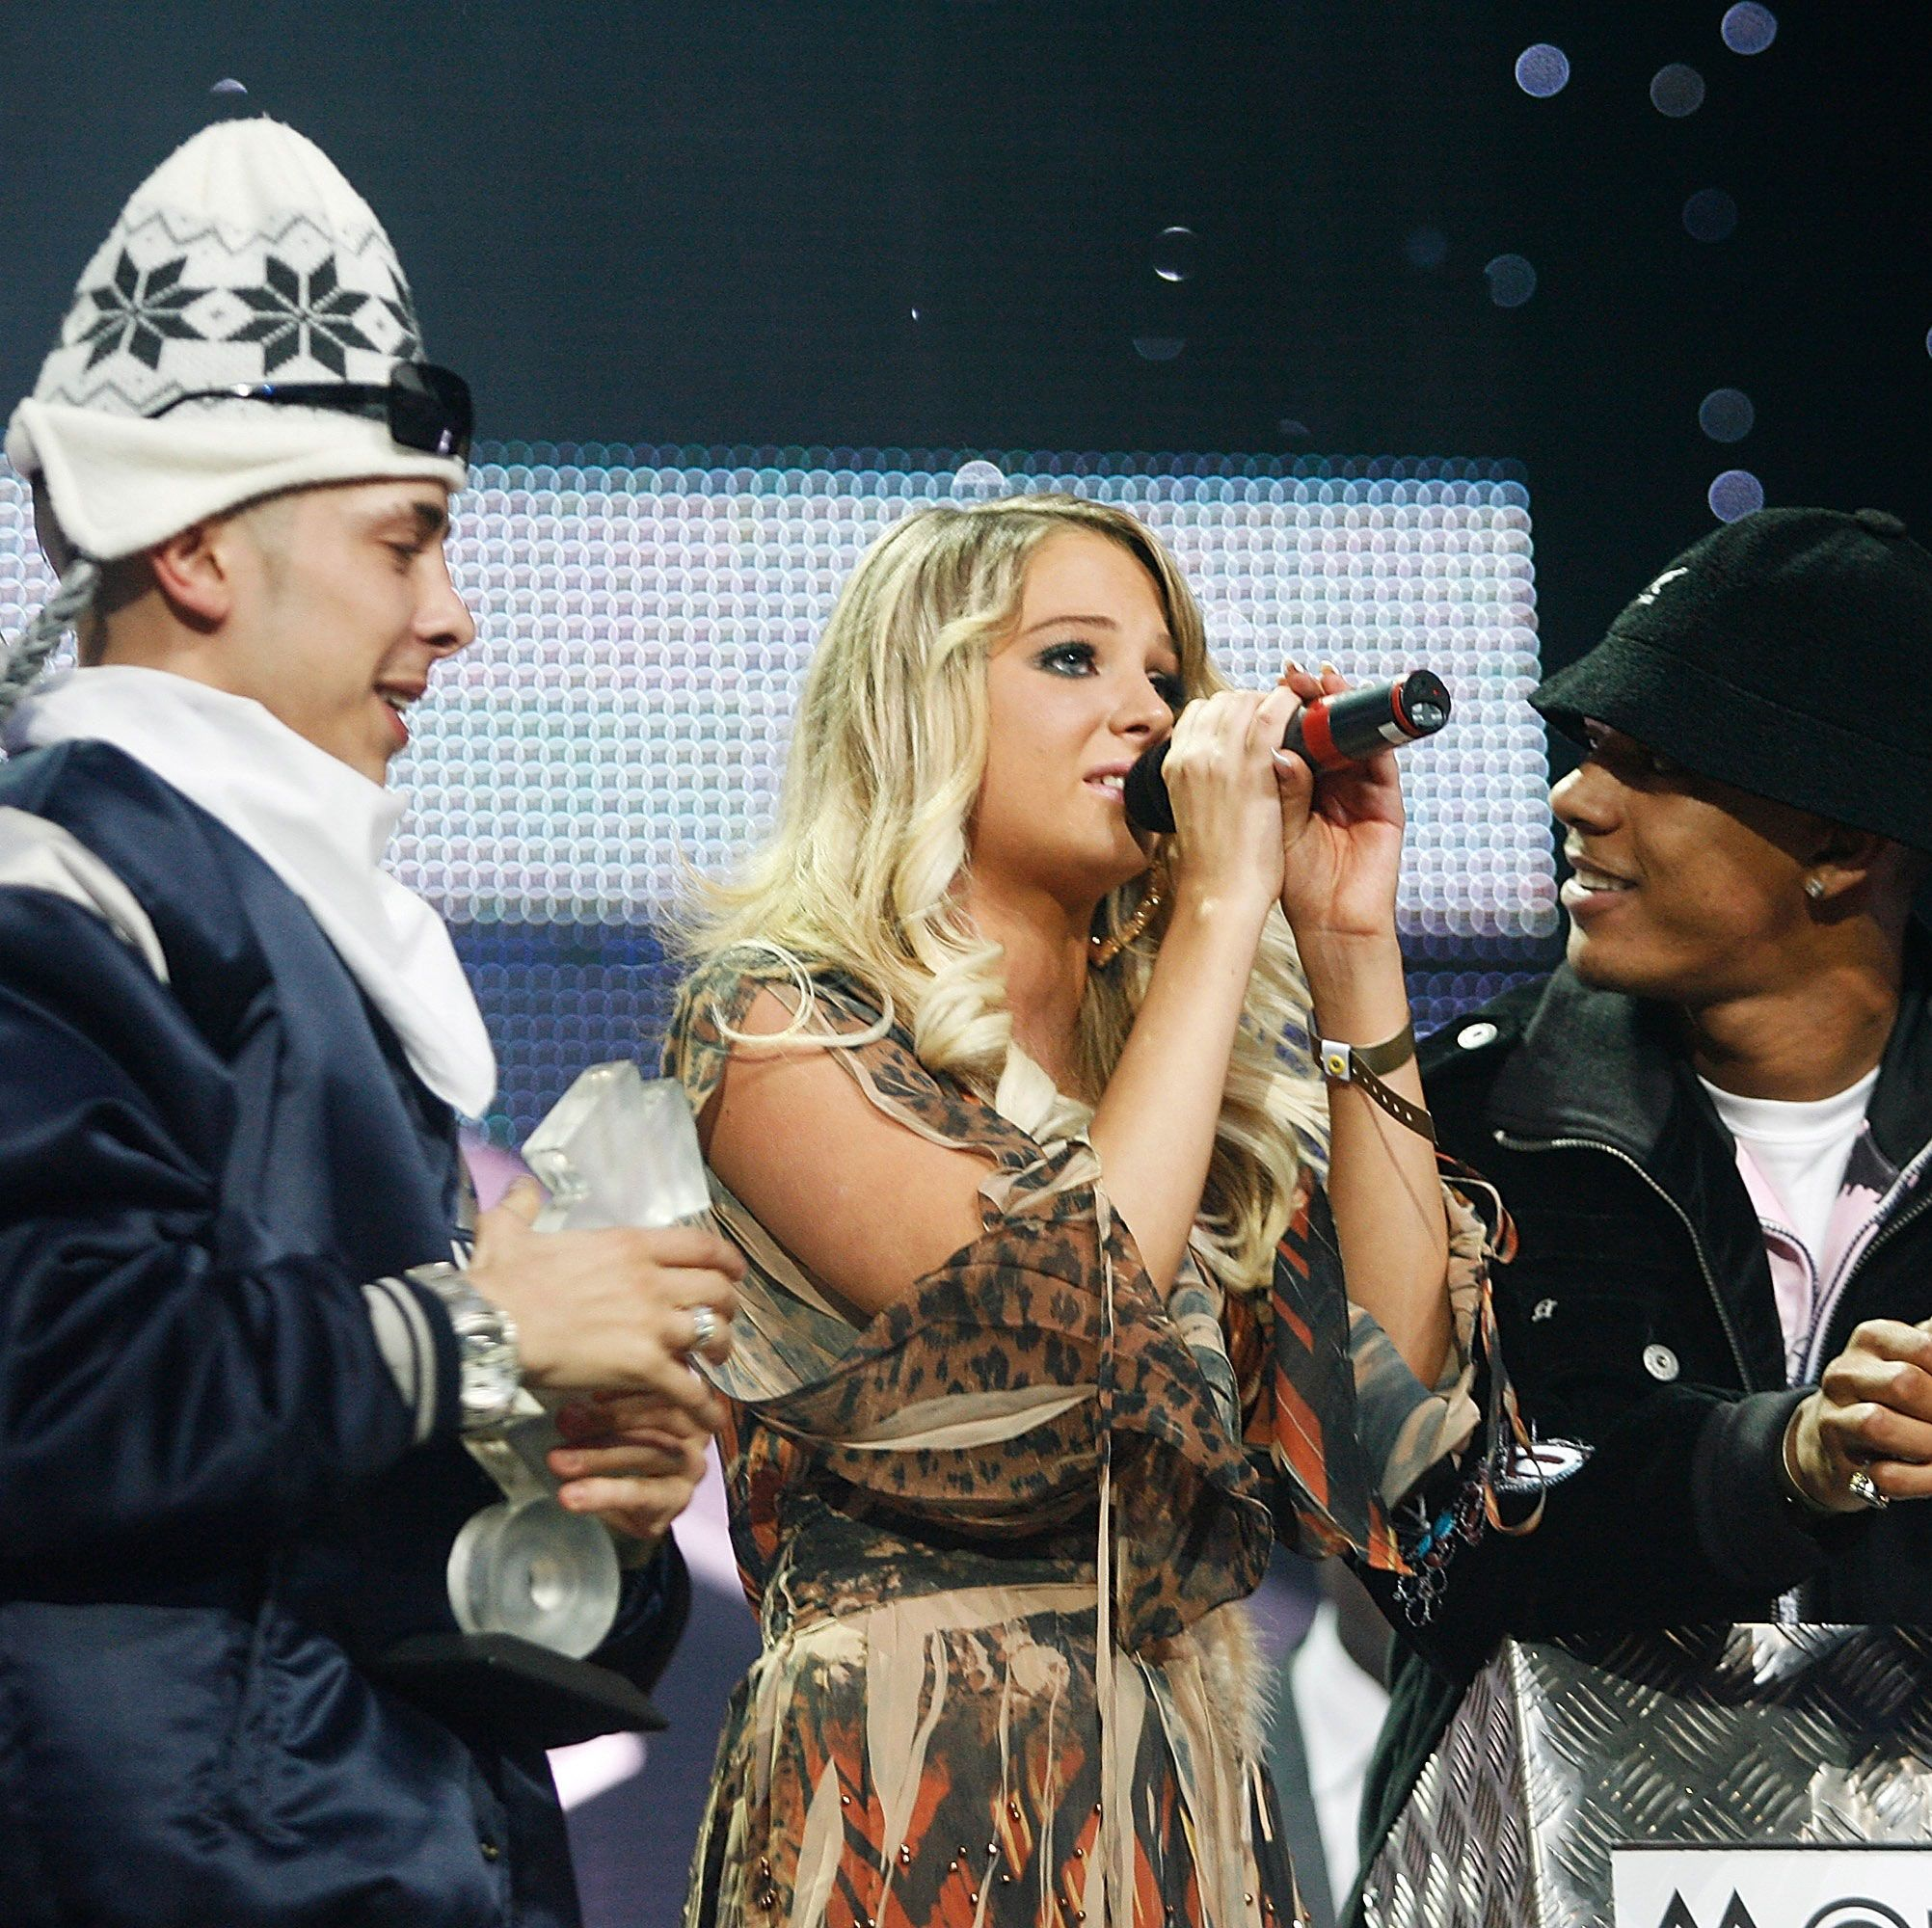 N-Dubz' Tulisa Contostavlos talks about reuniting with Dappy and Fazer